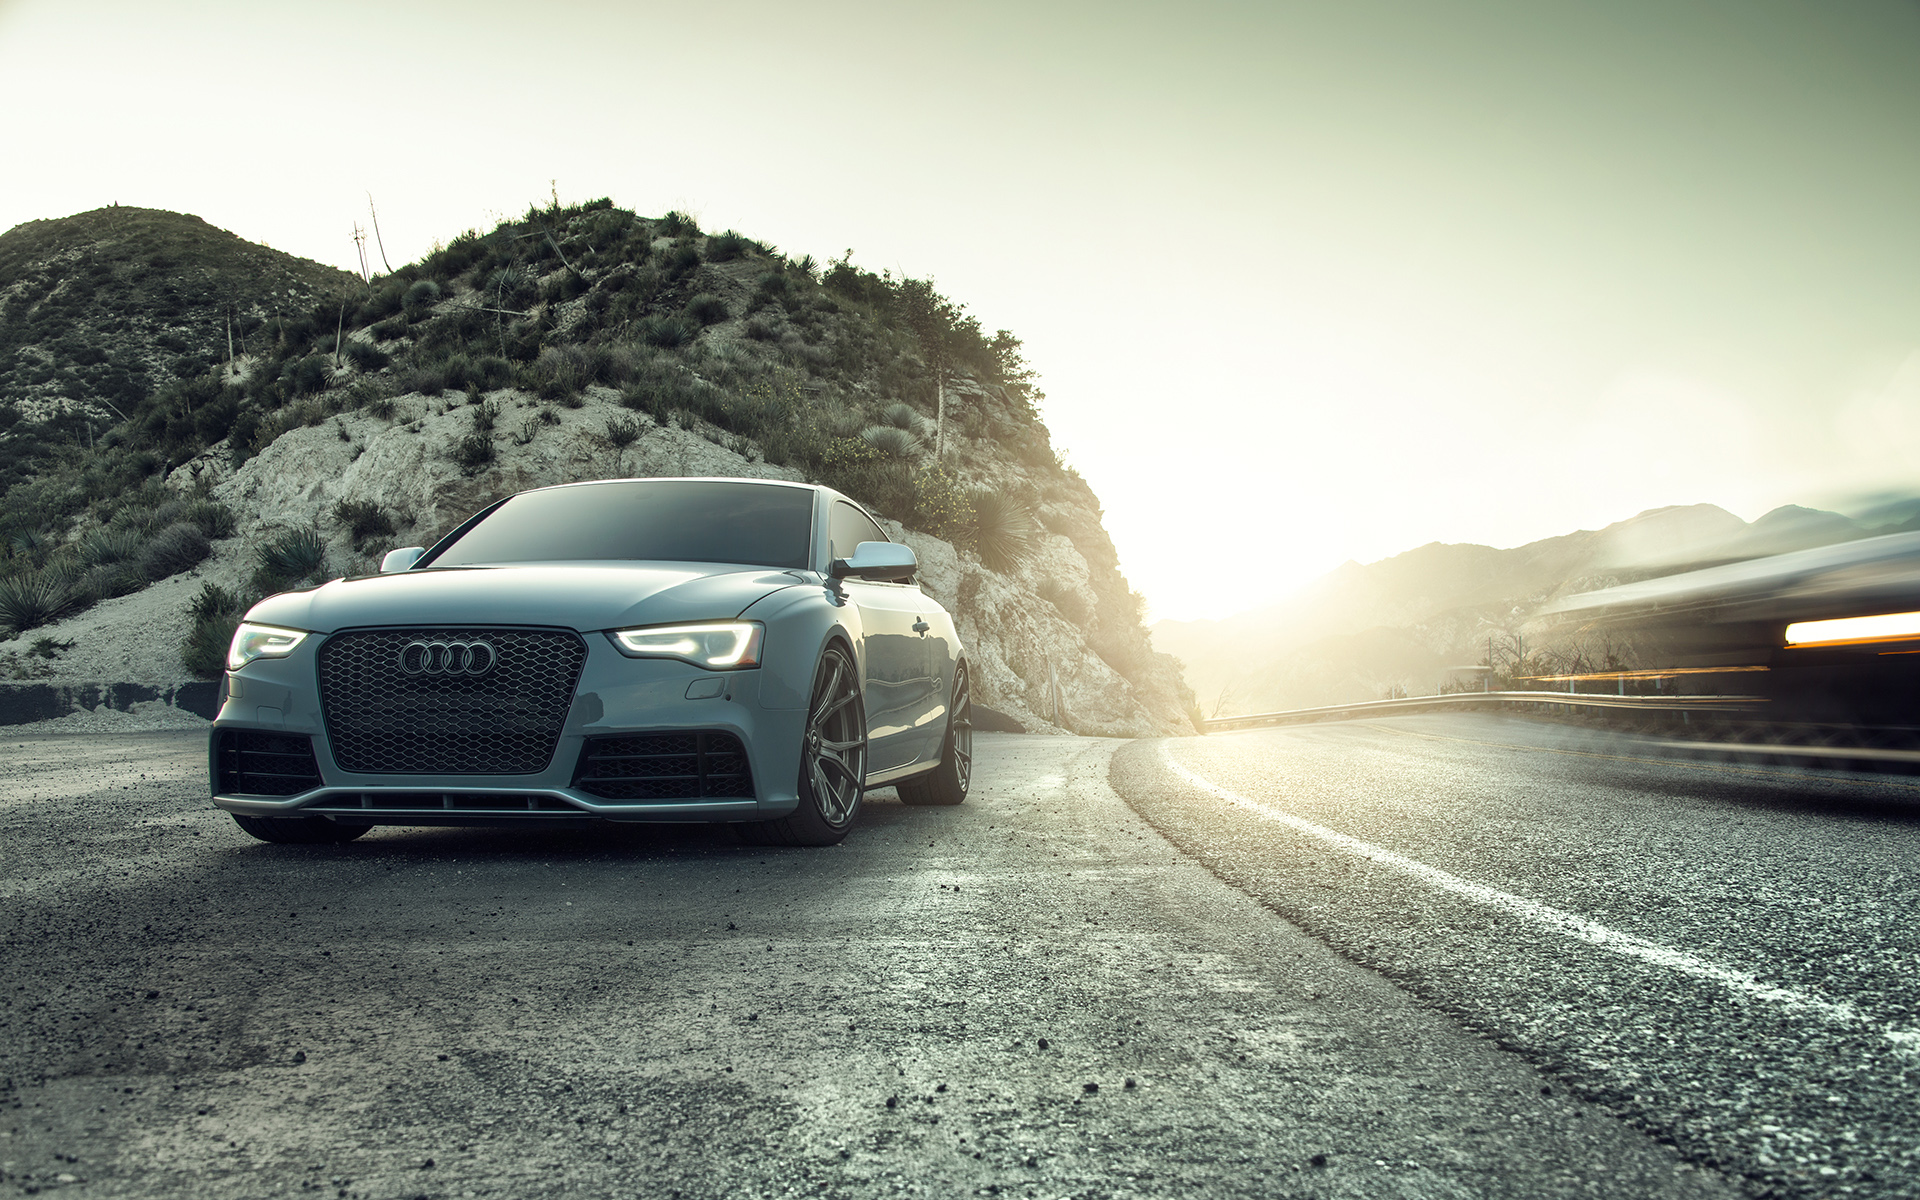 Vorsteiner Audi S5 A5 Series Wallpaper   HD Car Wallpapers   ID  5510 Tags  Audi Series Vorsteiner